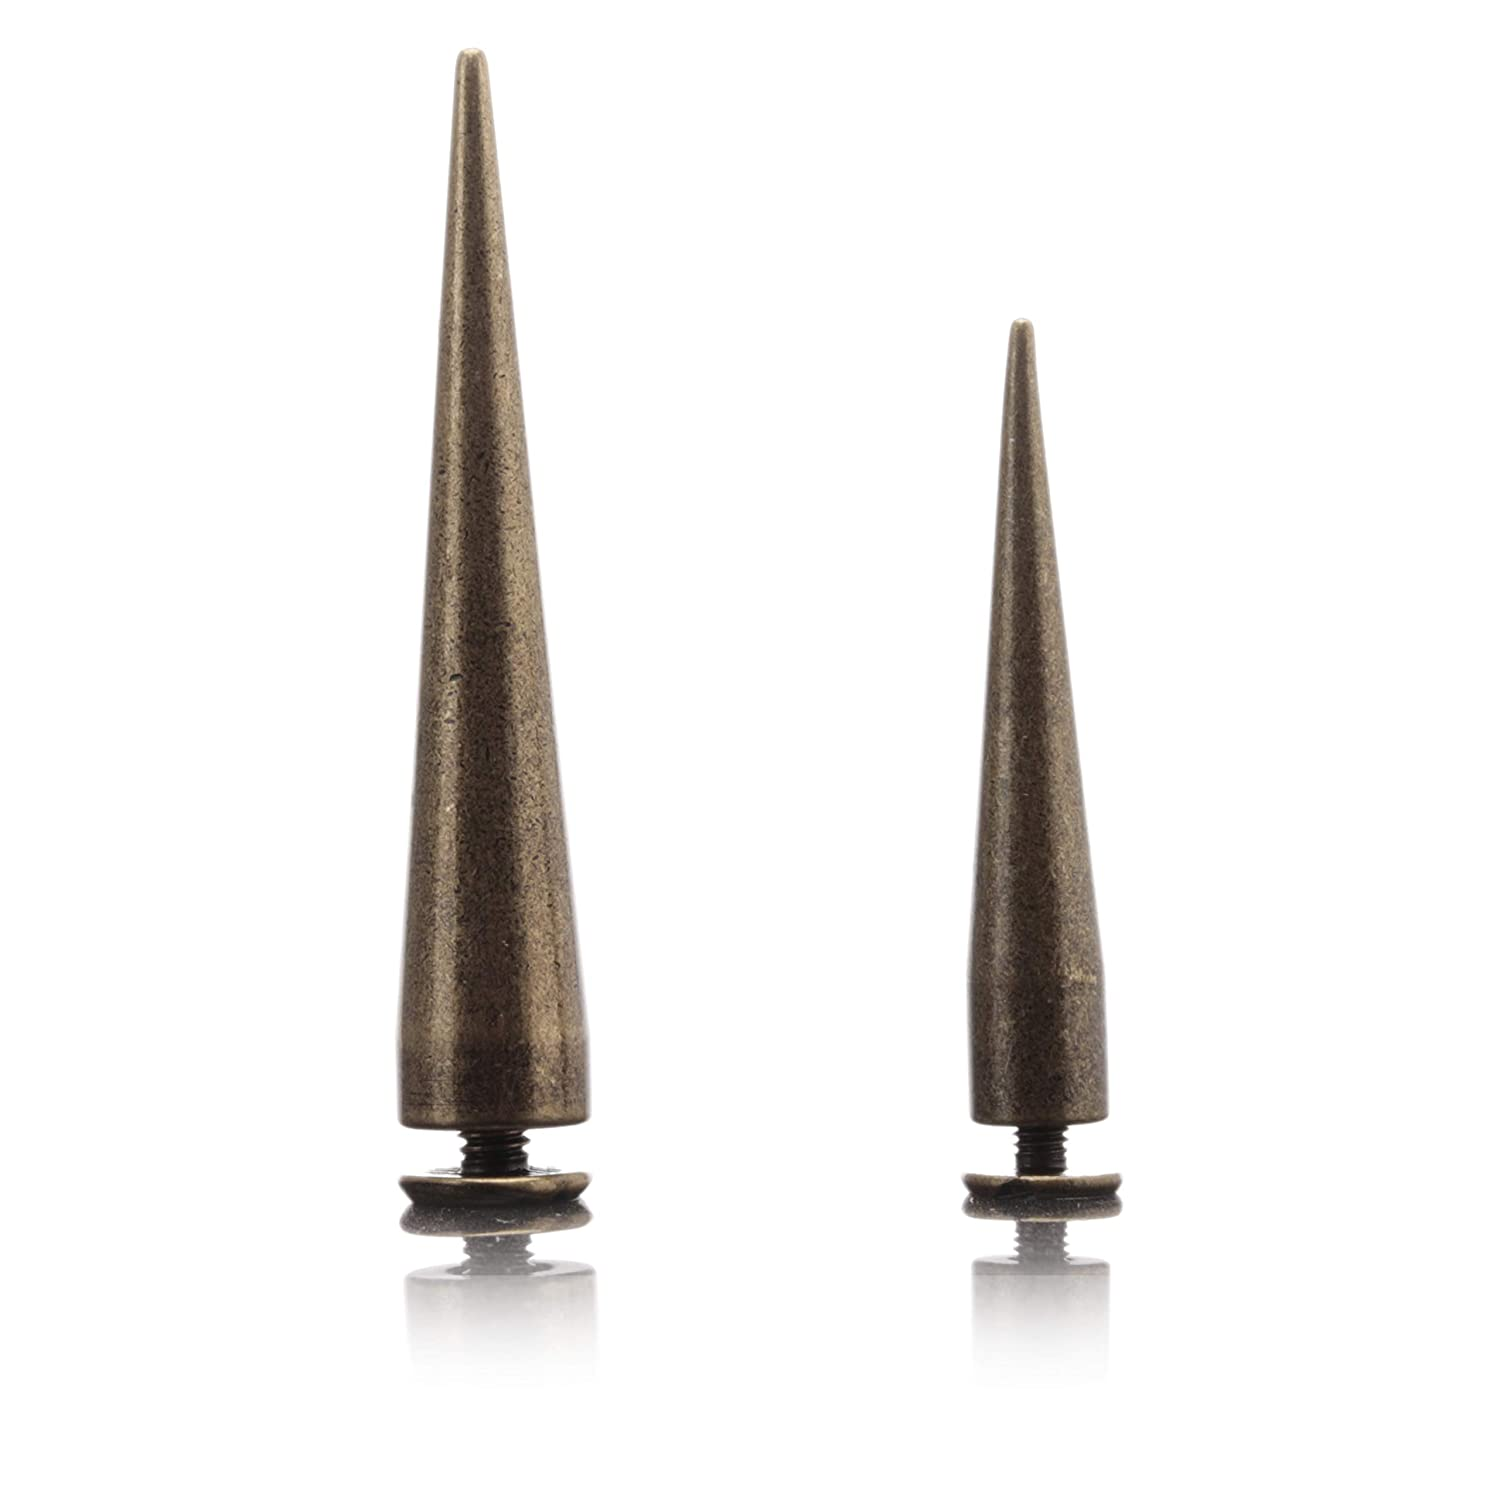 Uviviu 20 Pcs Spike Studs for Leathercraft,Solid Copper with Plating 10x55mm, Metal